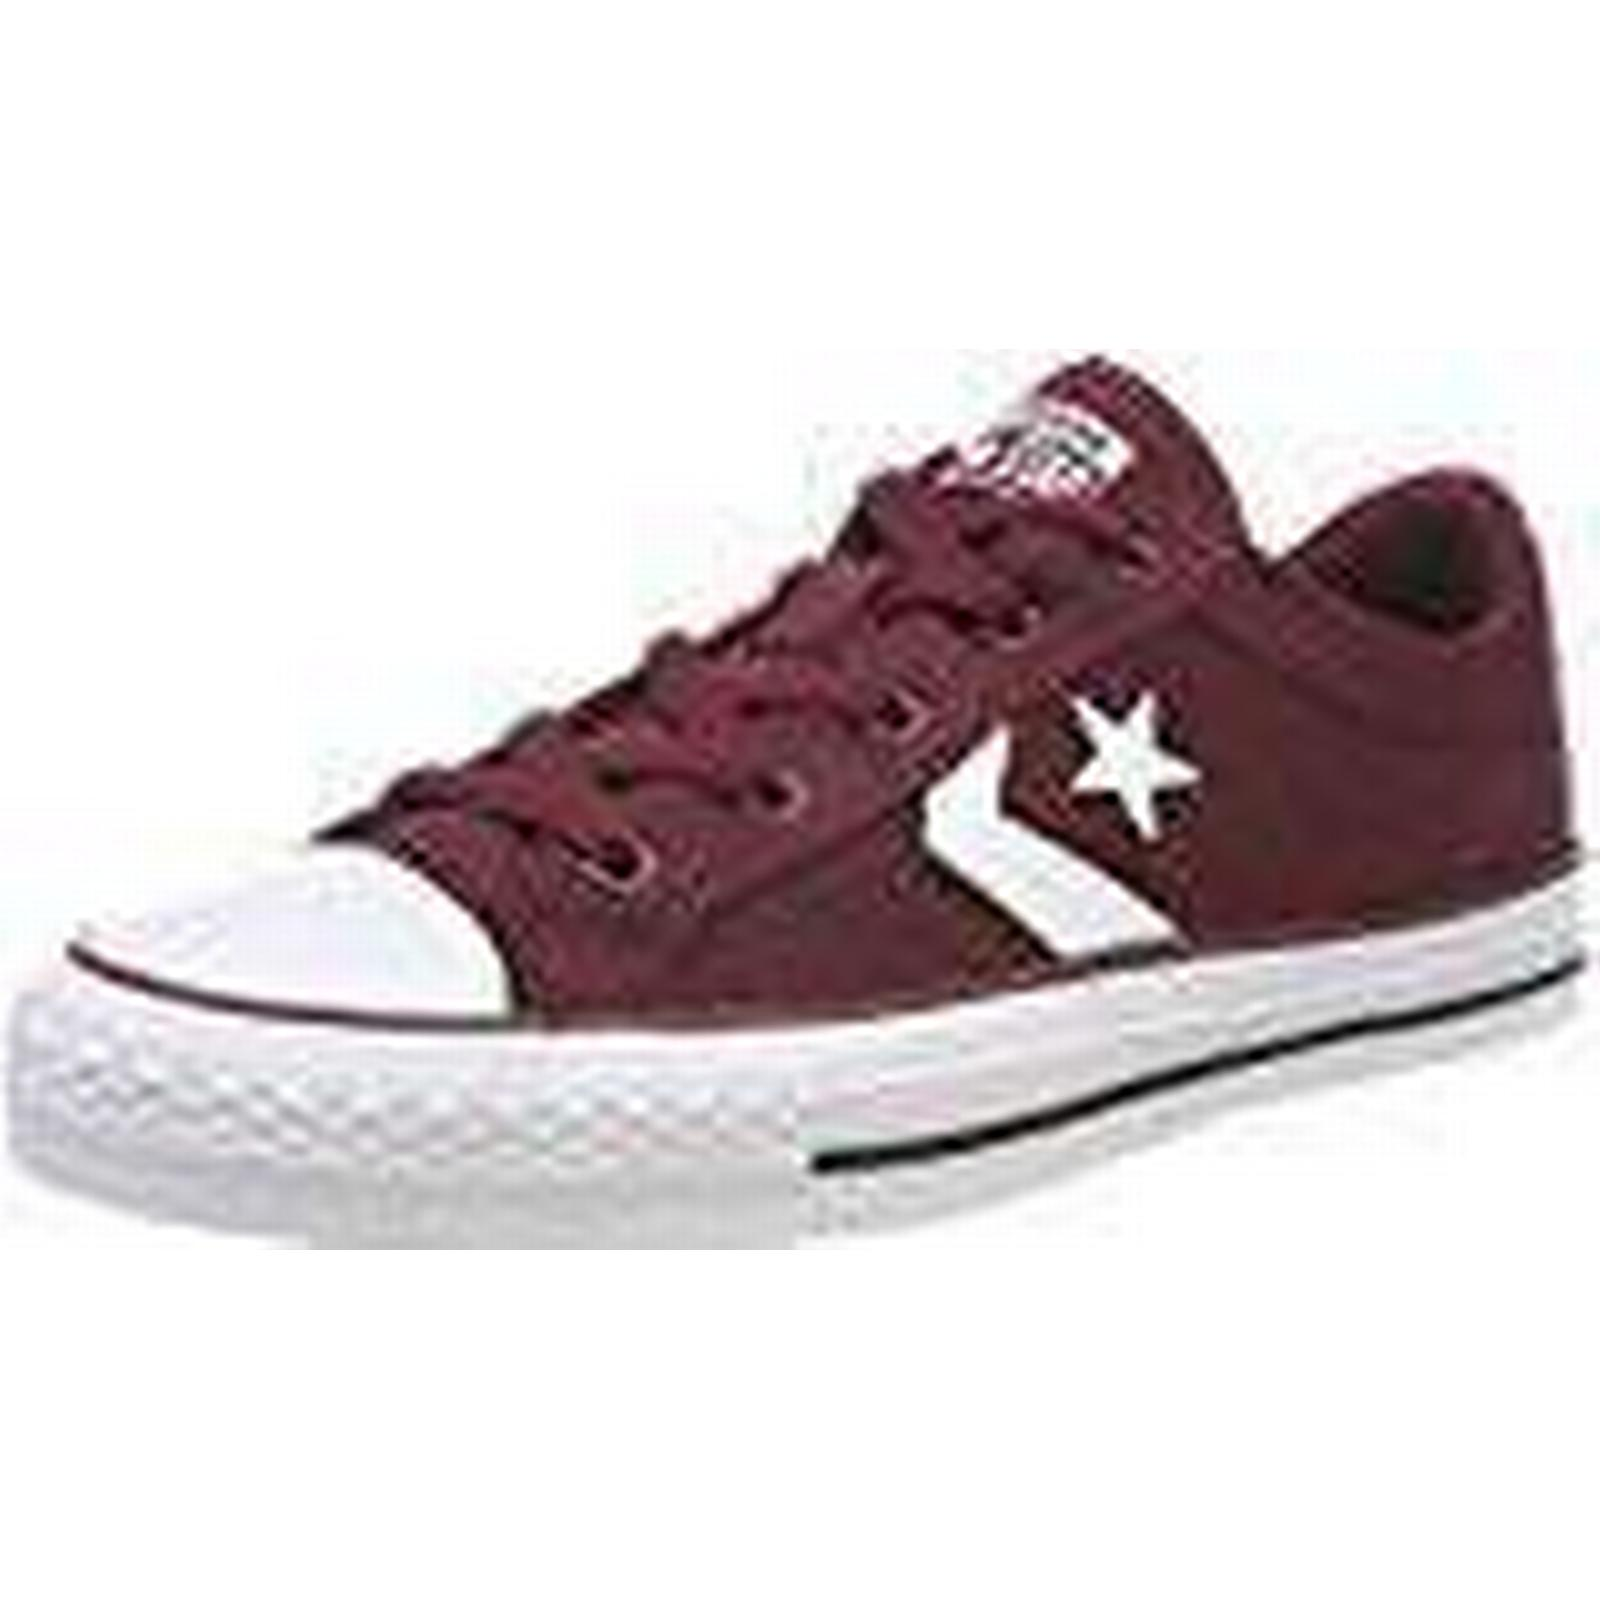 Converse Unisex Adults' Star Player OX 628, Dark Burgundy/White Trainers, Red 628, OX 7 UK 7 UK 45e67e